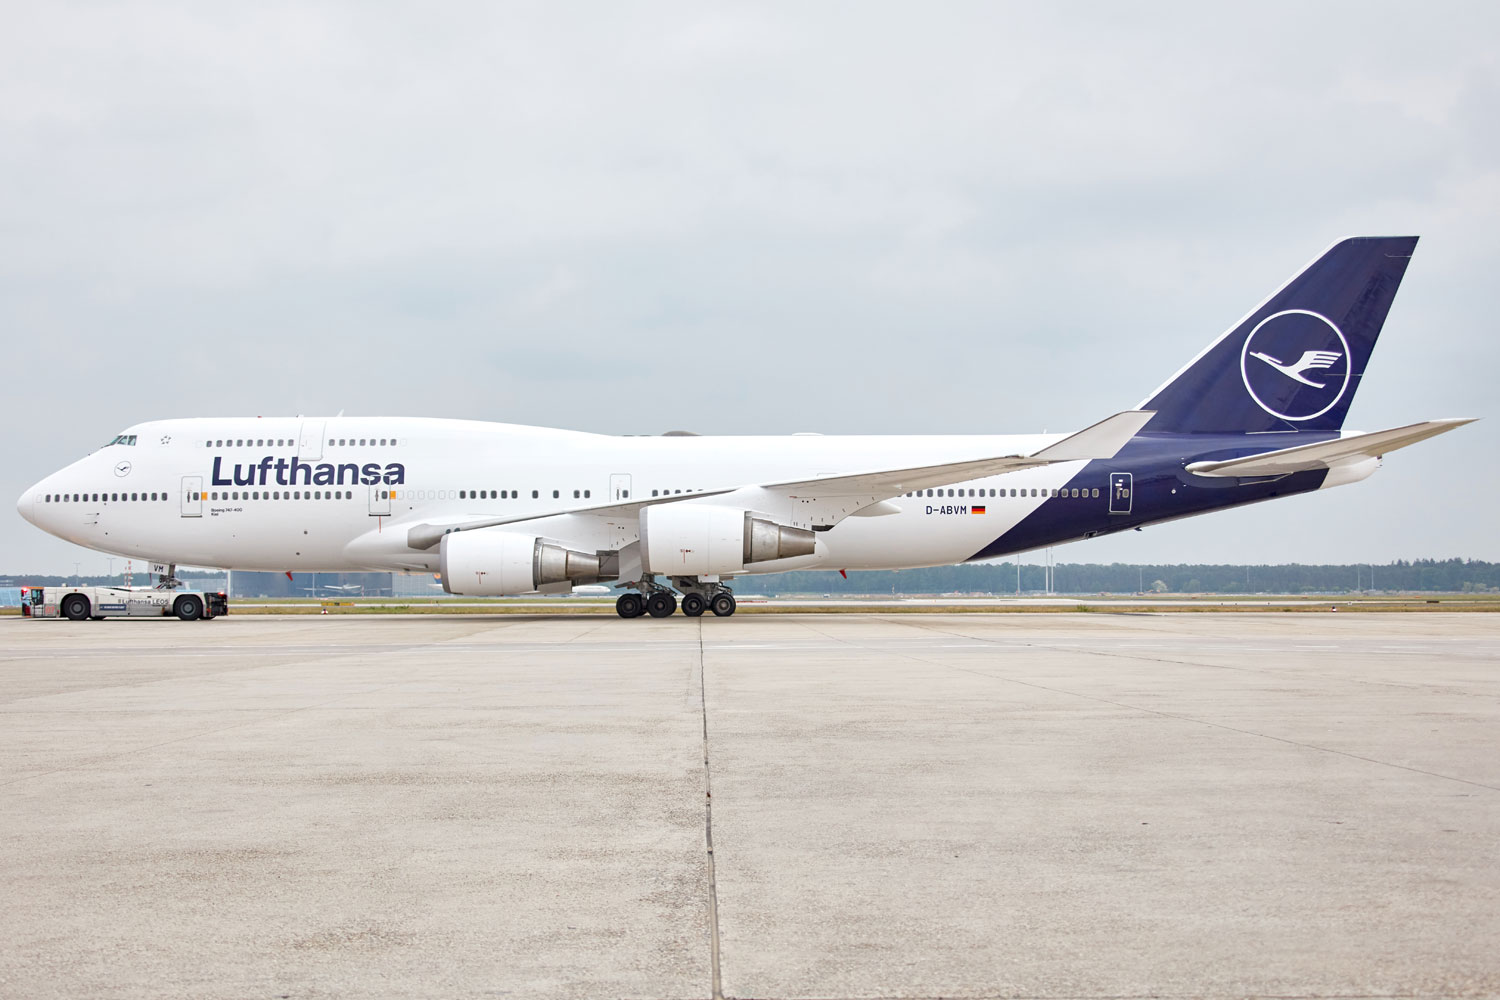 Lufthansa plans to resume flights with Boeing 747-400 - Air Data News